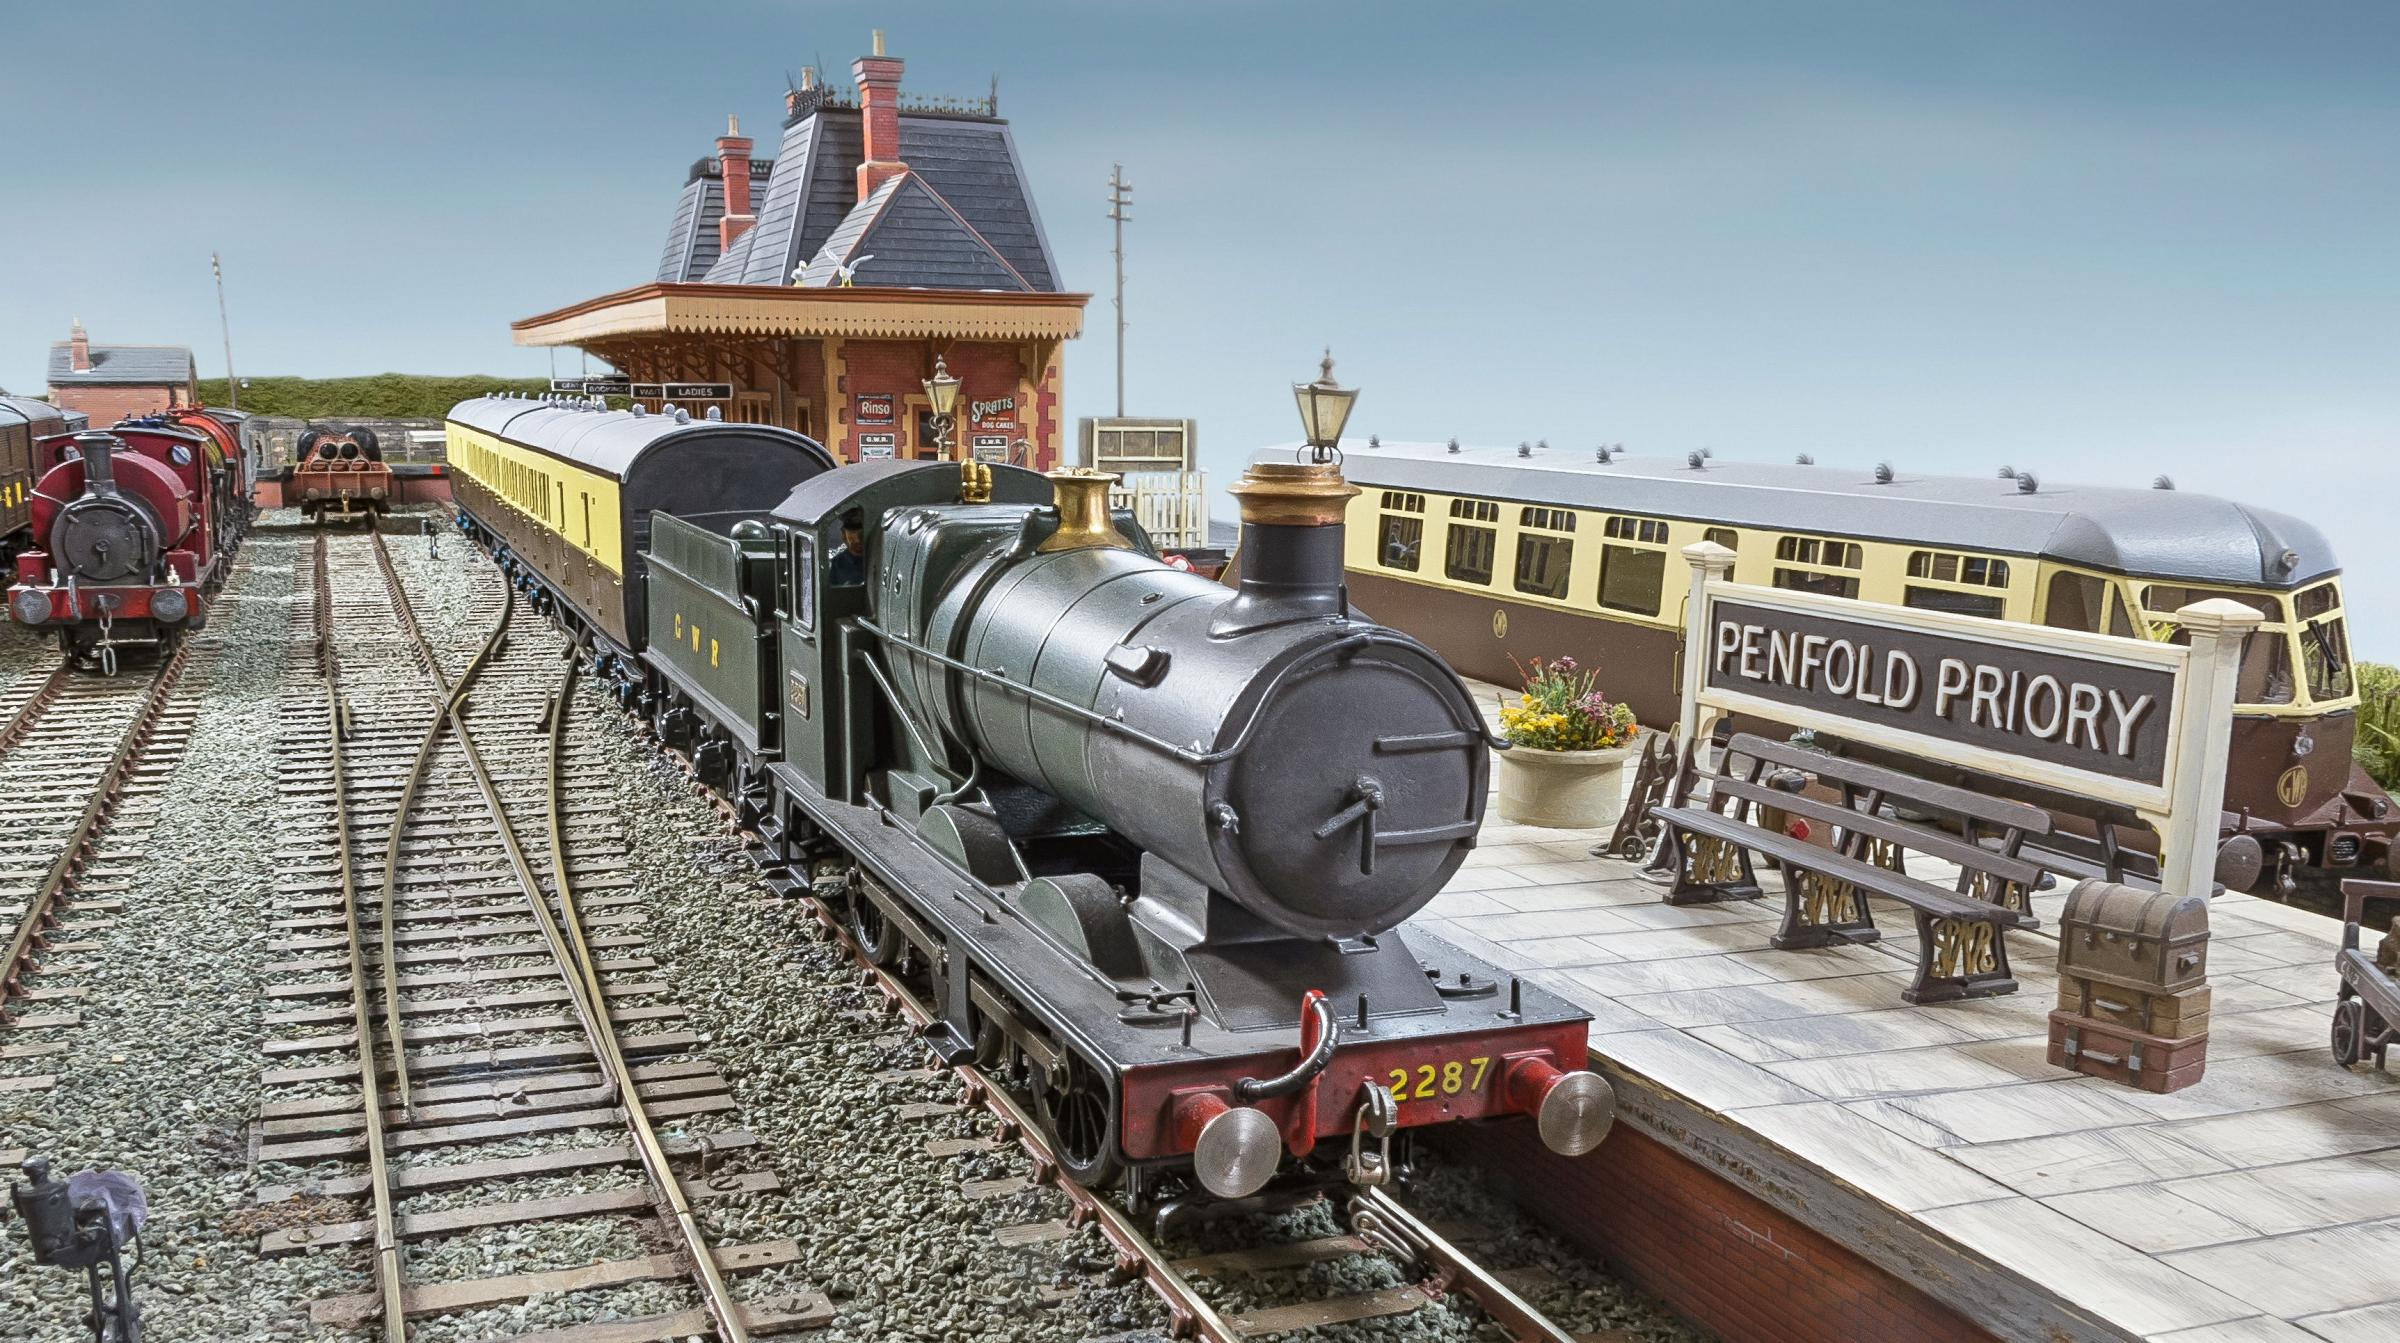 Railex 2019 Model Railway Exhibition